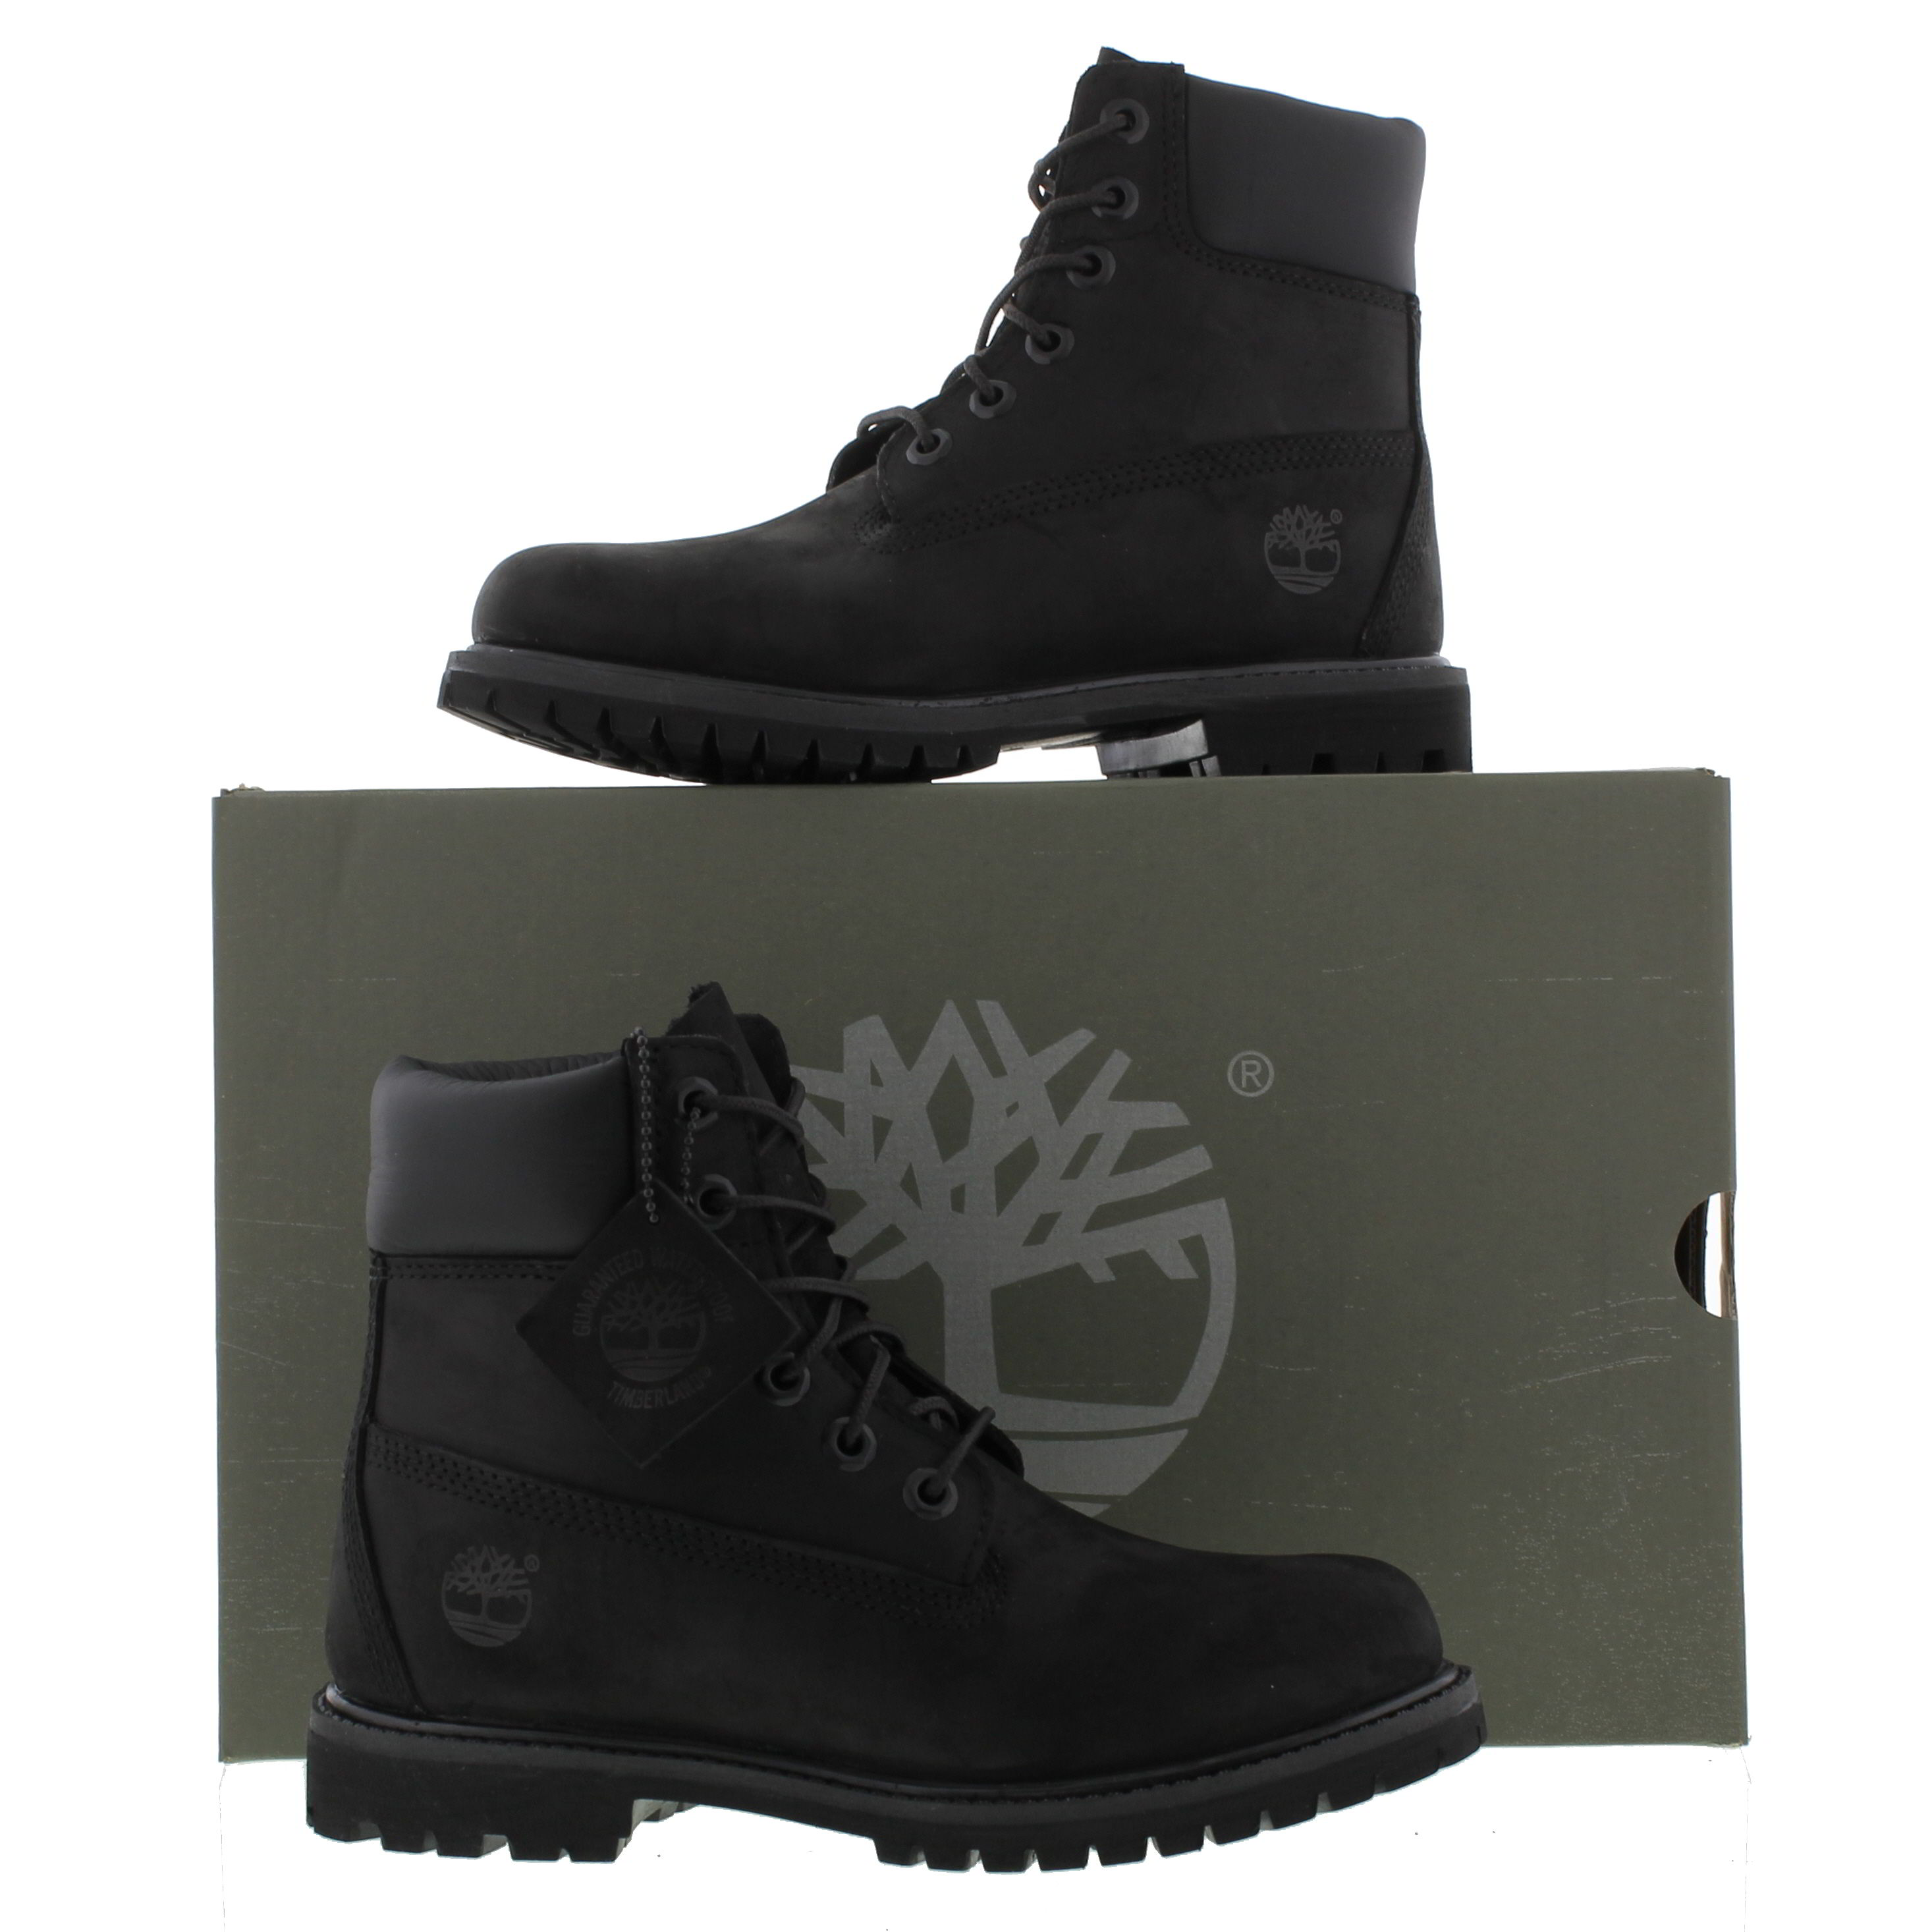 Popular Timberland Womens Black Glancy 6 Inch Boots 8432A | TOWER London